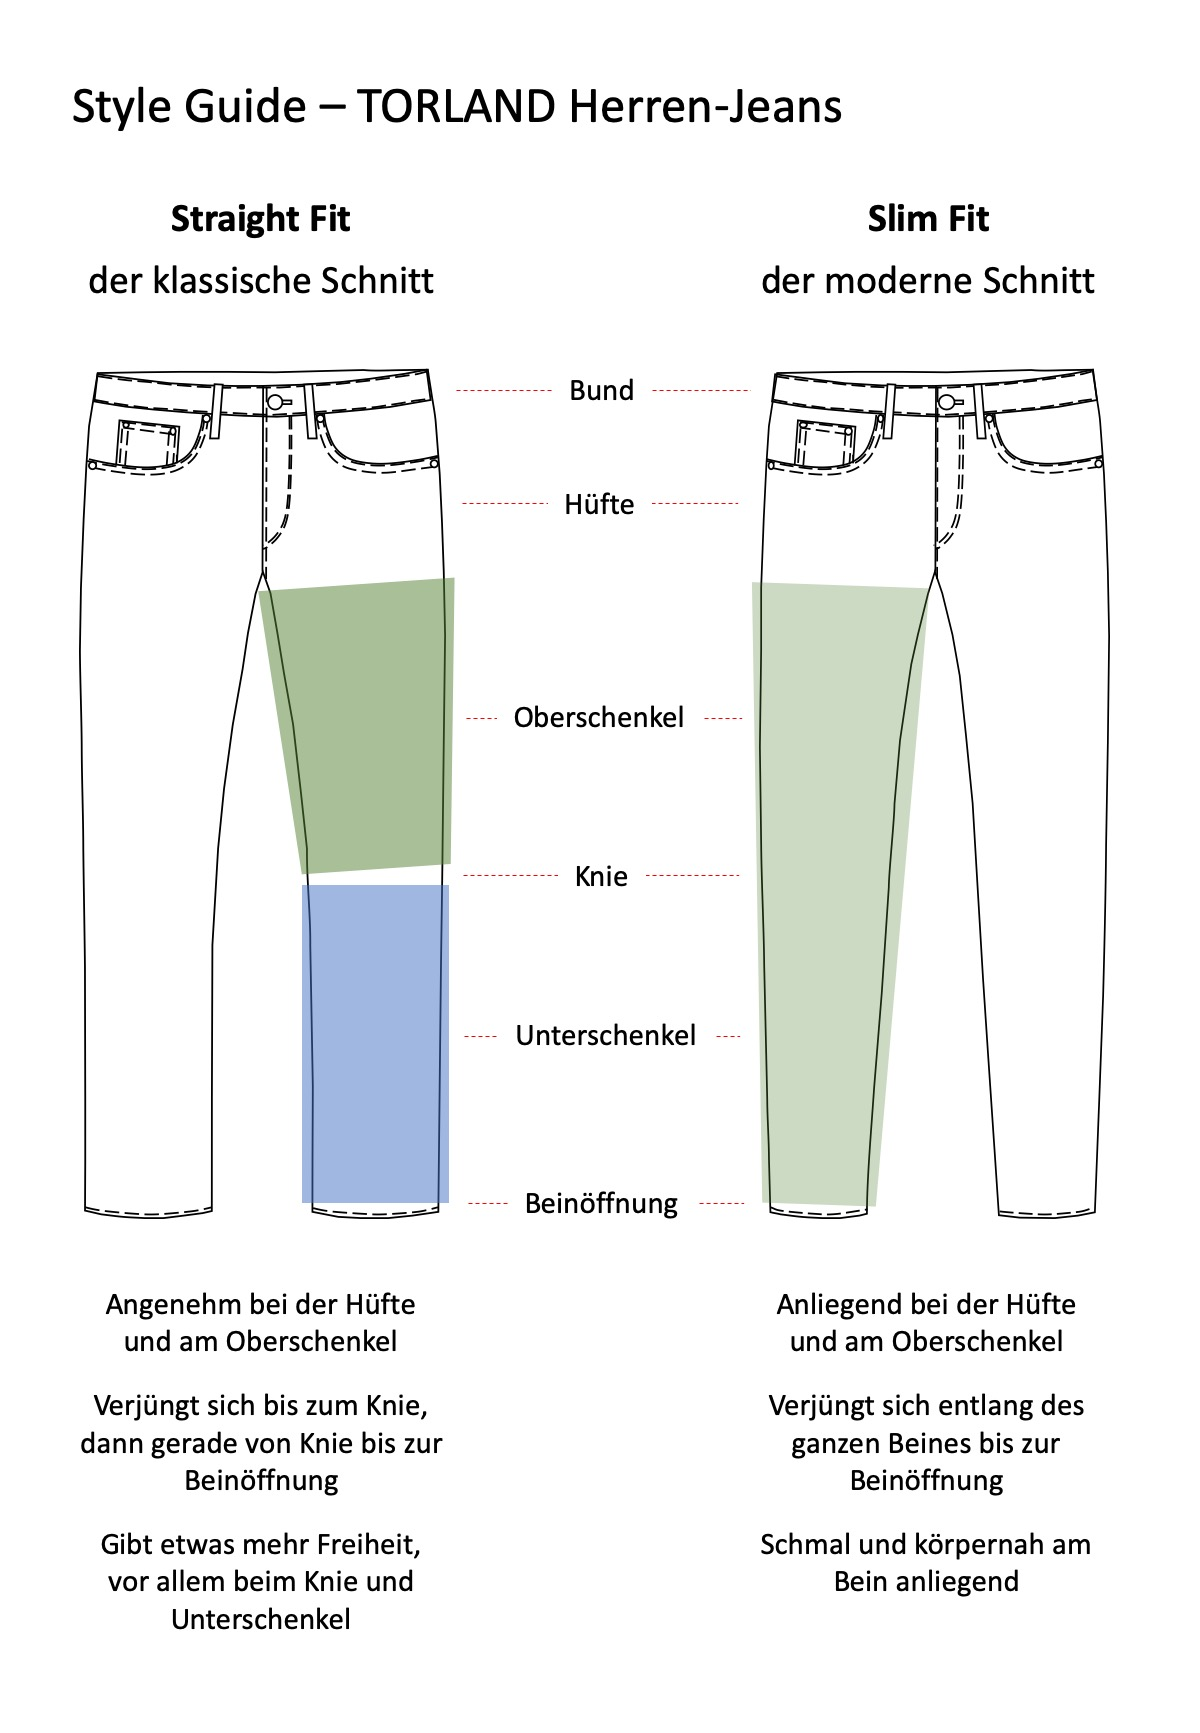 Style Guide - TORLAND Herren-Jeans